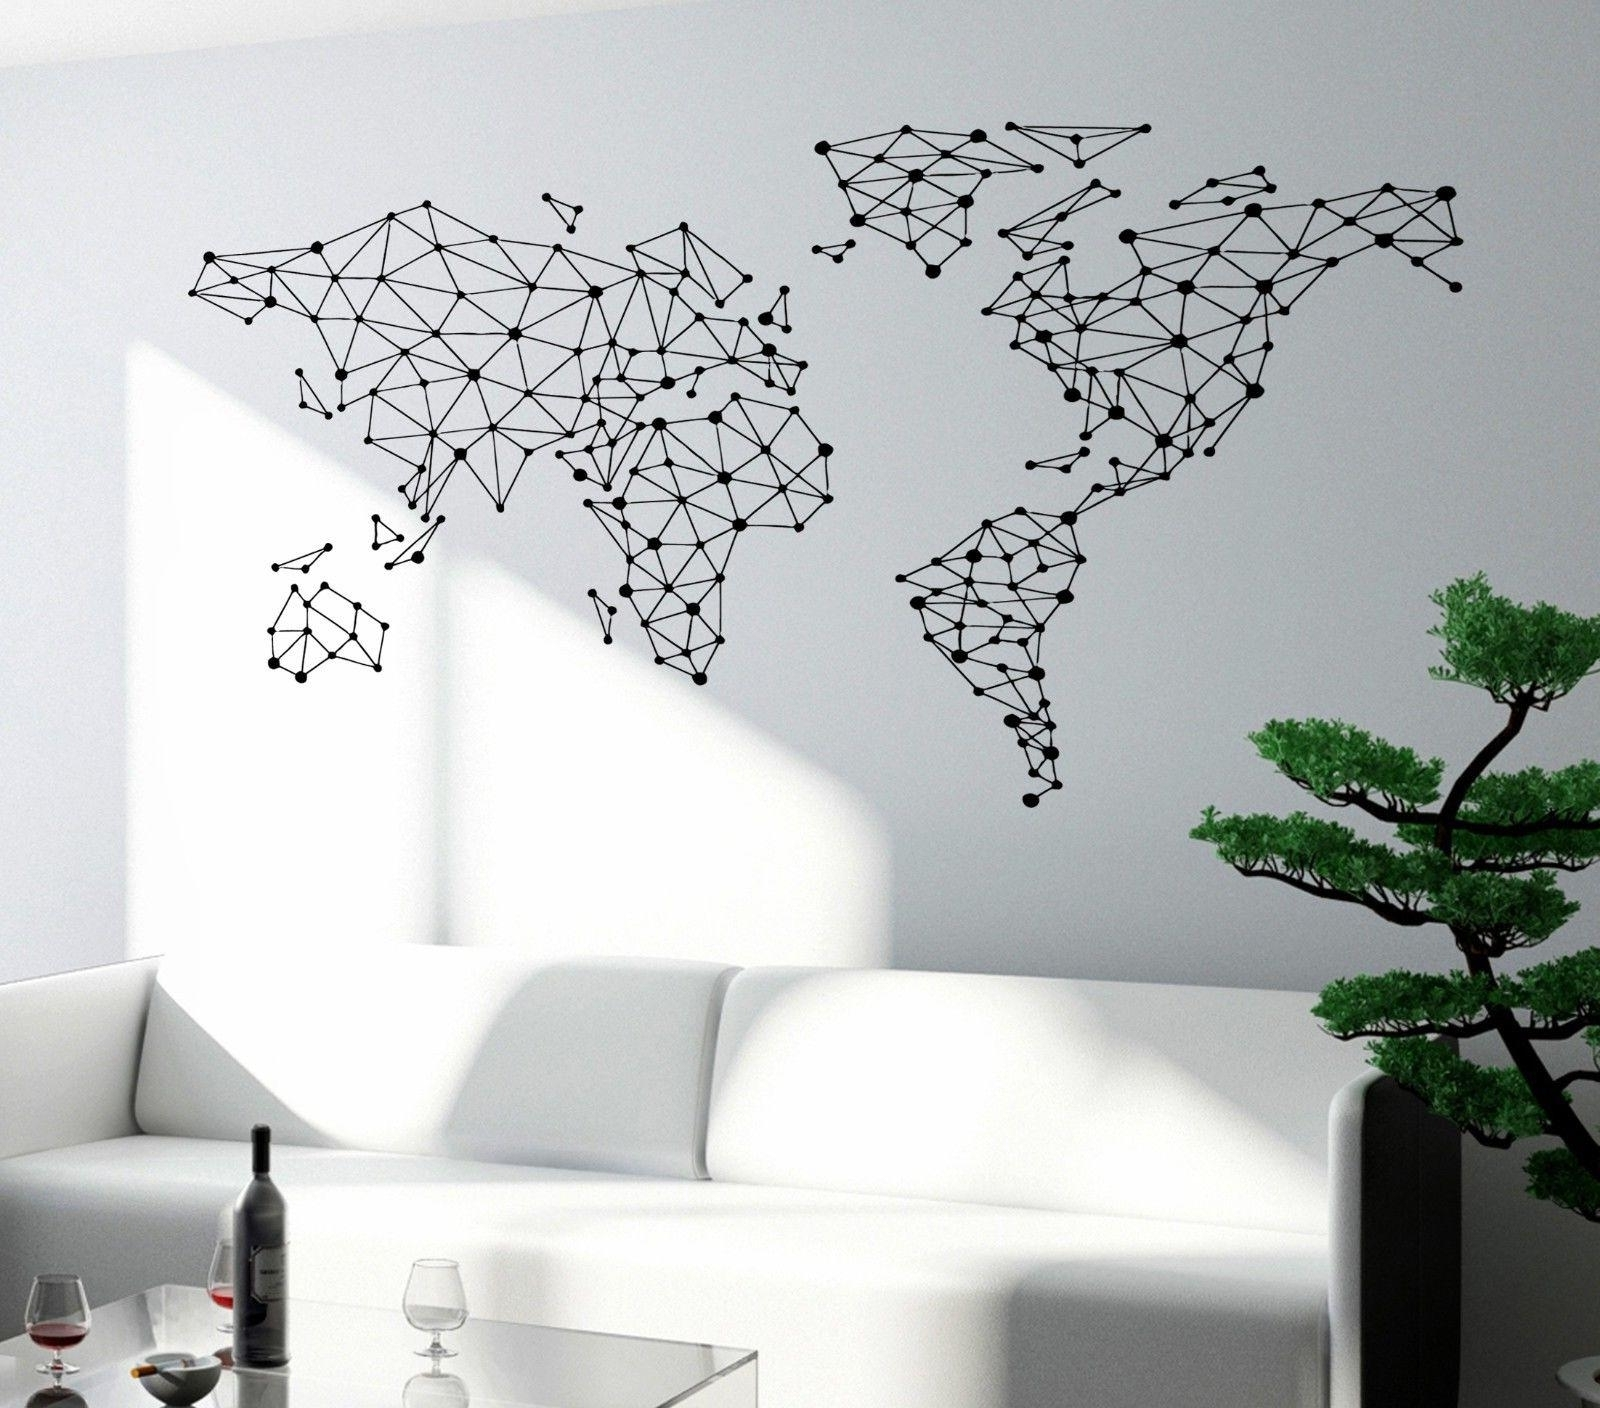 Wondrous Inspration Amazon Wall Art Best Of World Map Dahlia S Home Within Famous Diy World Map Wall Art (View 15 of 15)